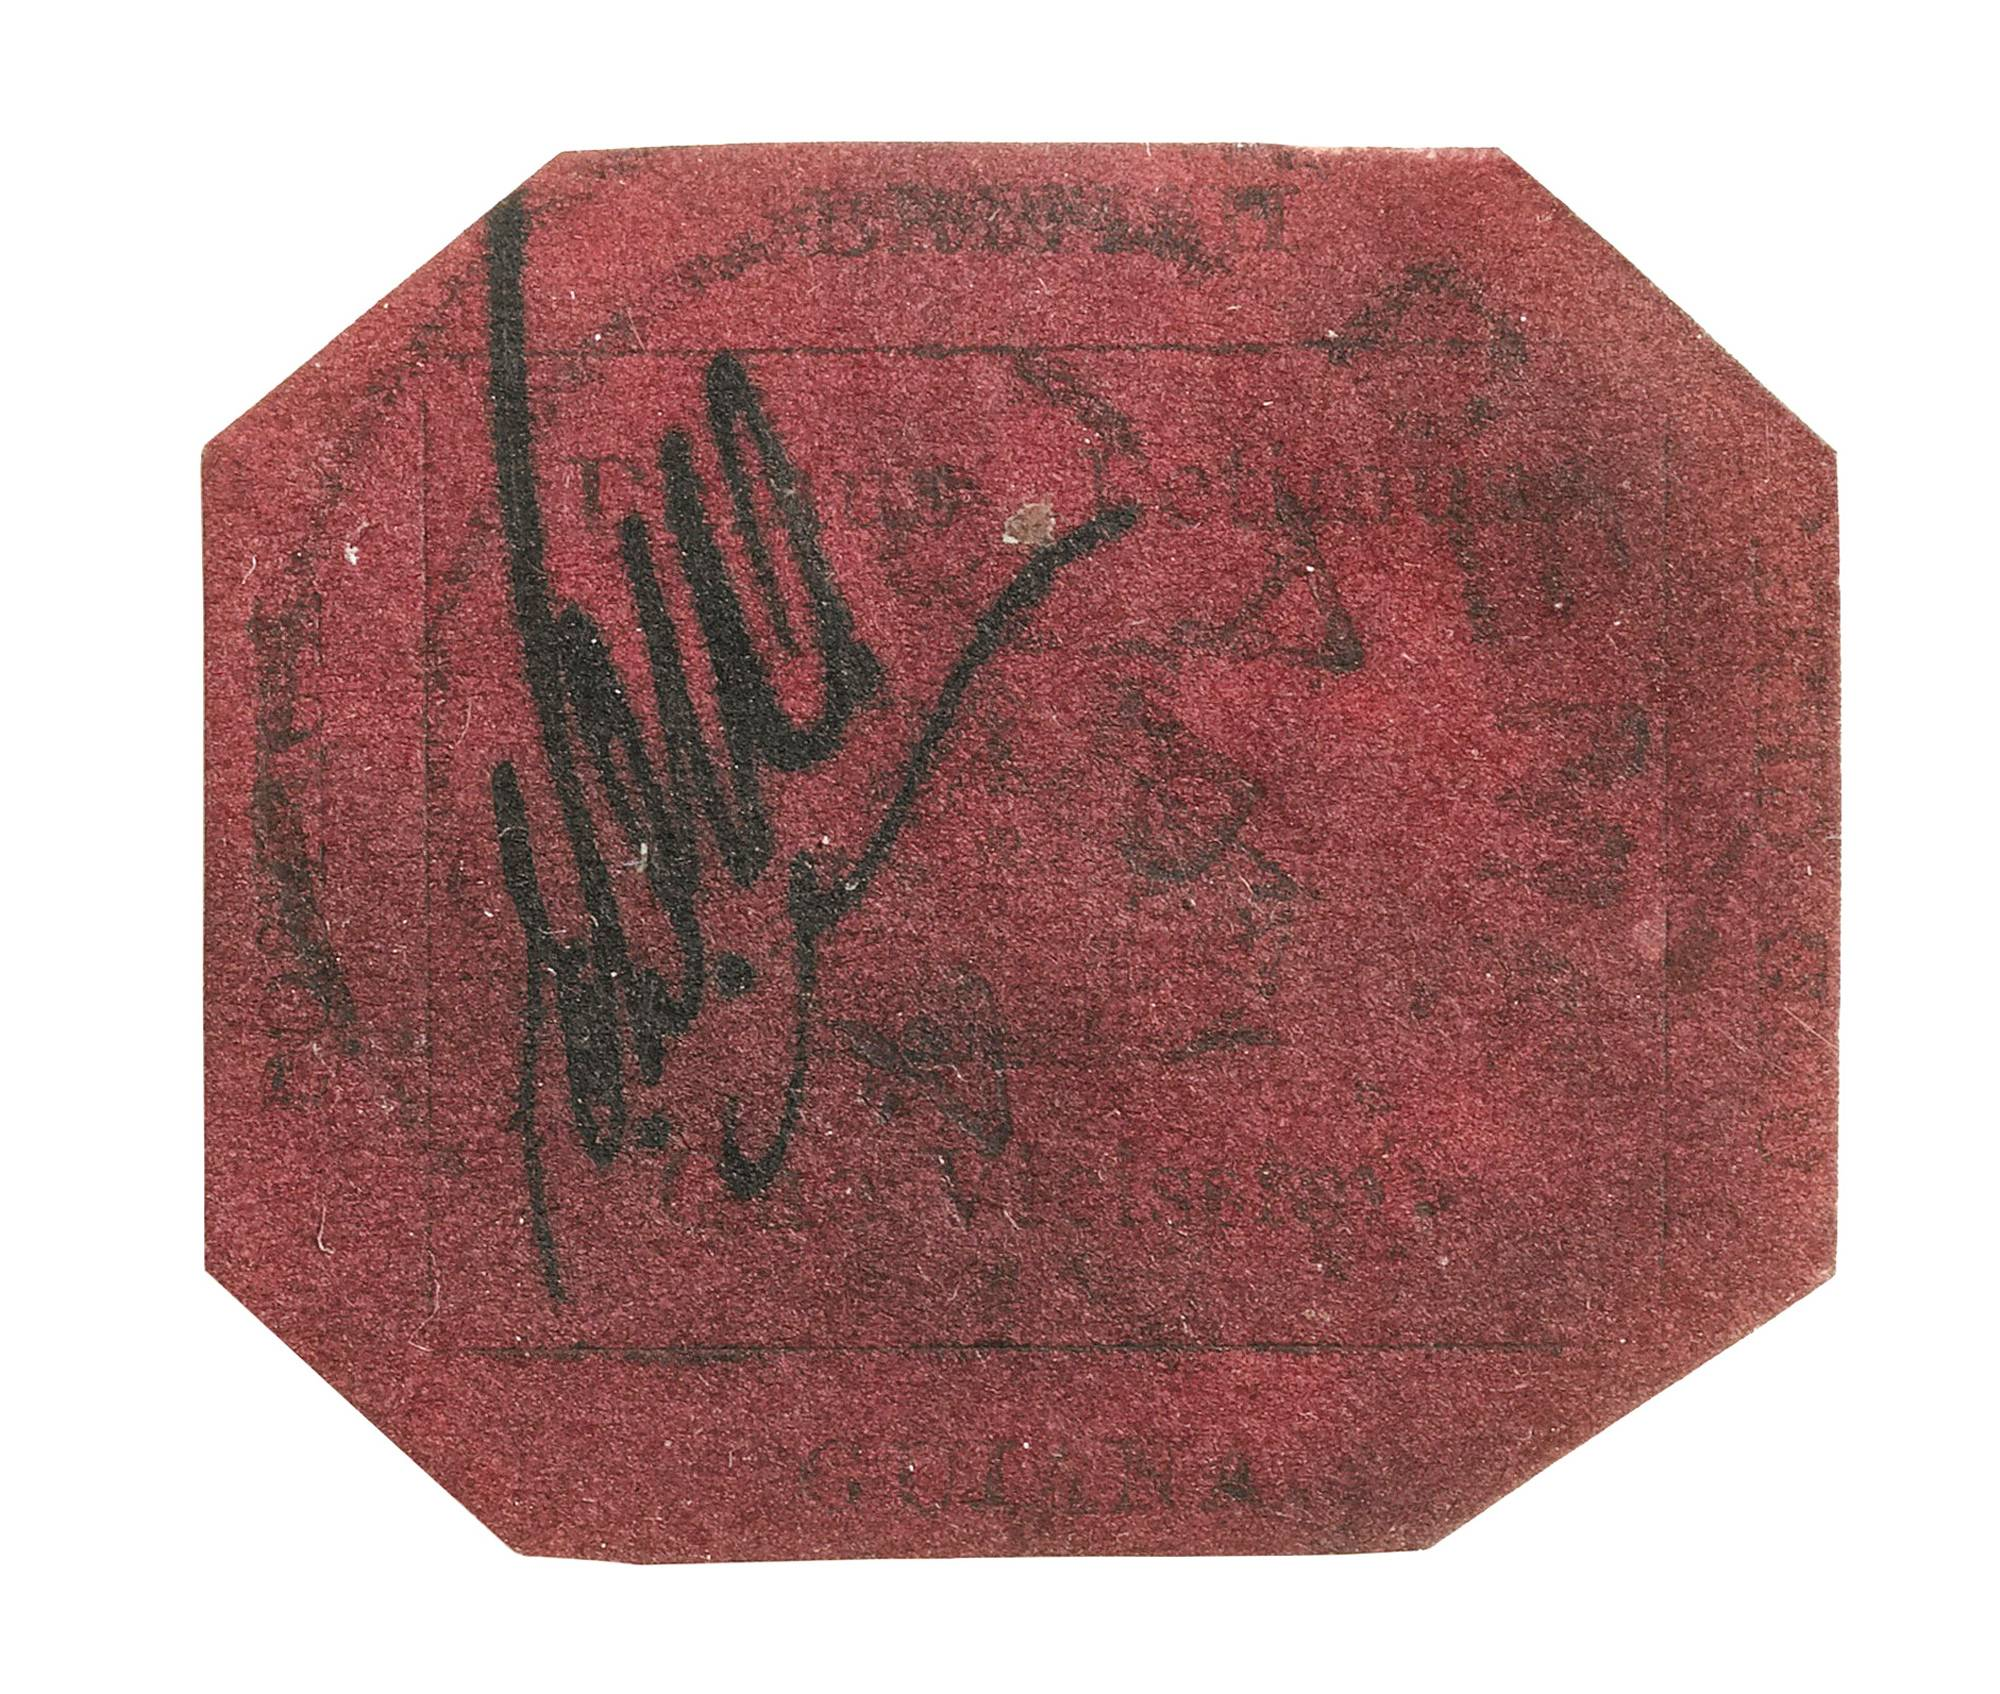 Already having set three price records for the sale of a single stamp, the 1-cent 1856 British Guiana stamp is poised to set a fourth when it is offered at auction by Sotheby's on Tuesday, June 17, 2014.